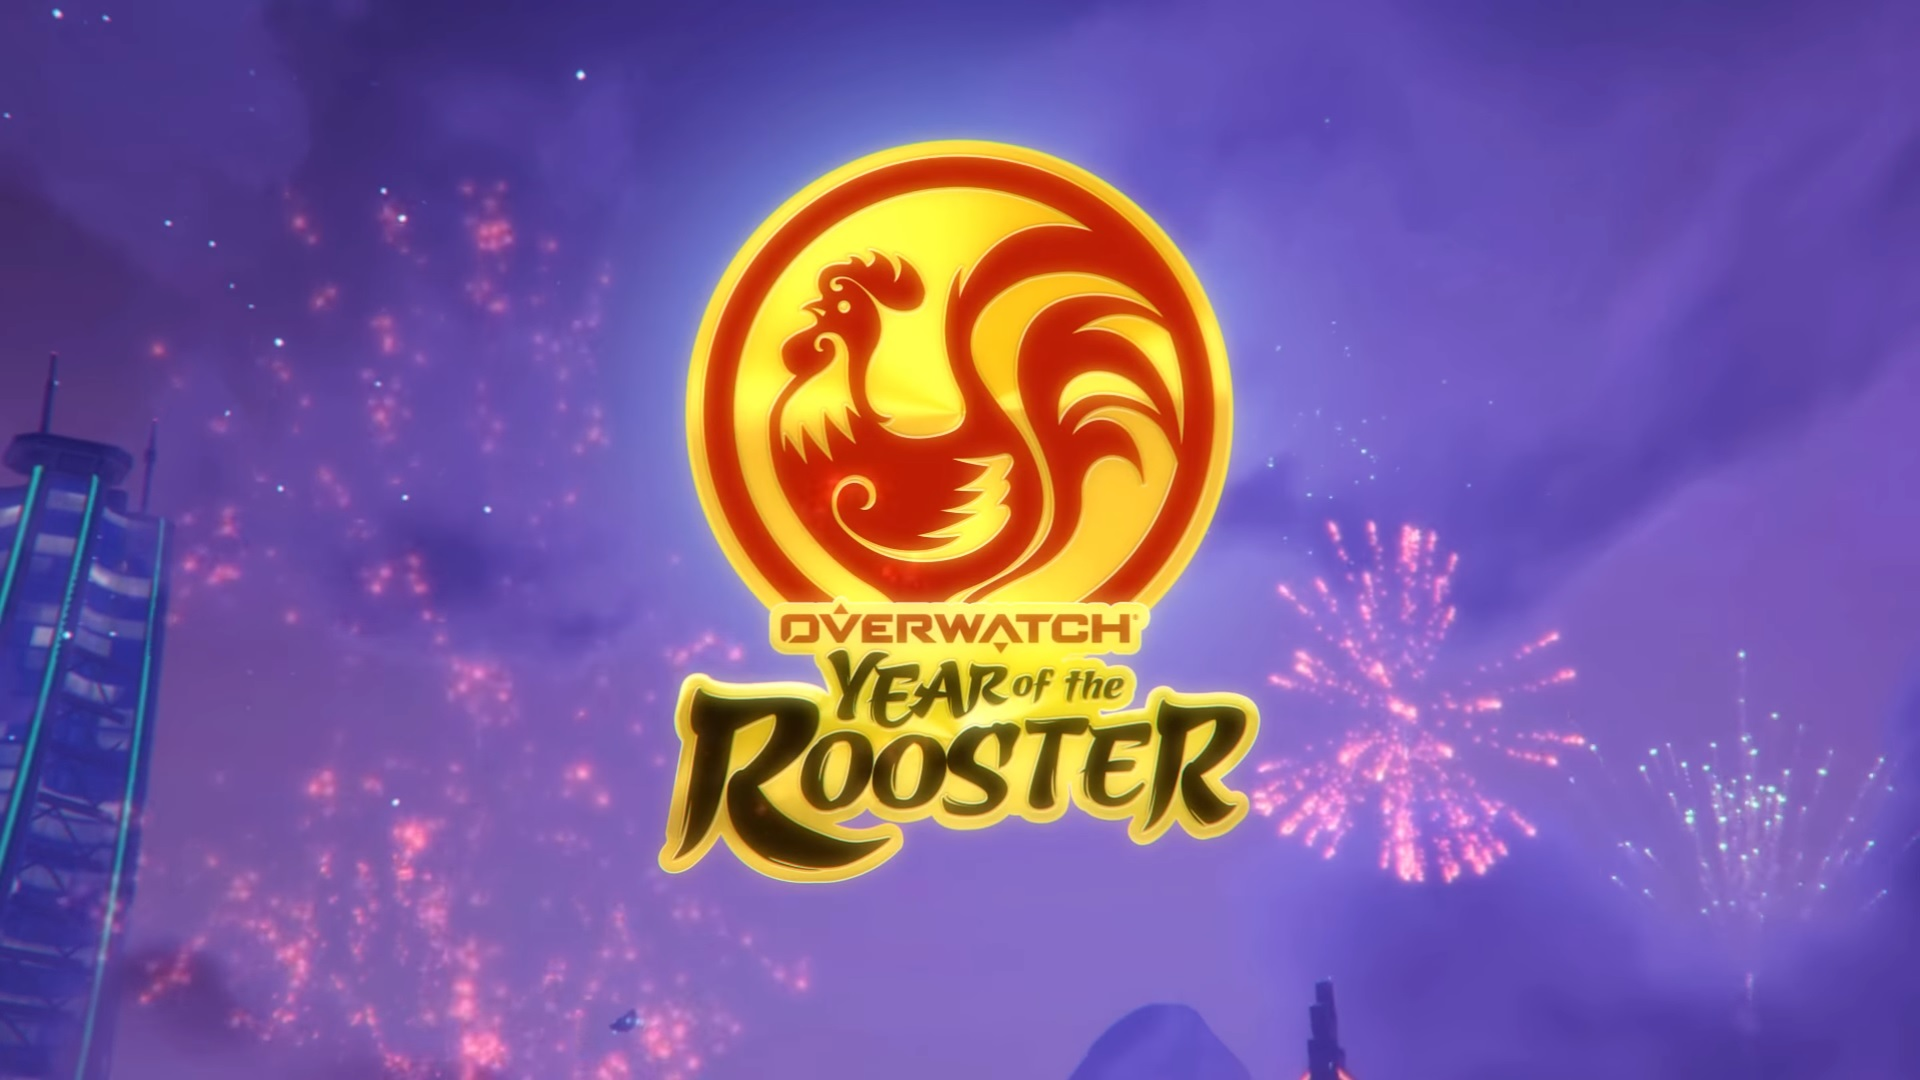 Overwatch Event Calendar.Overwatch Year Of The Rooster Event Inn